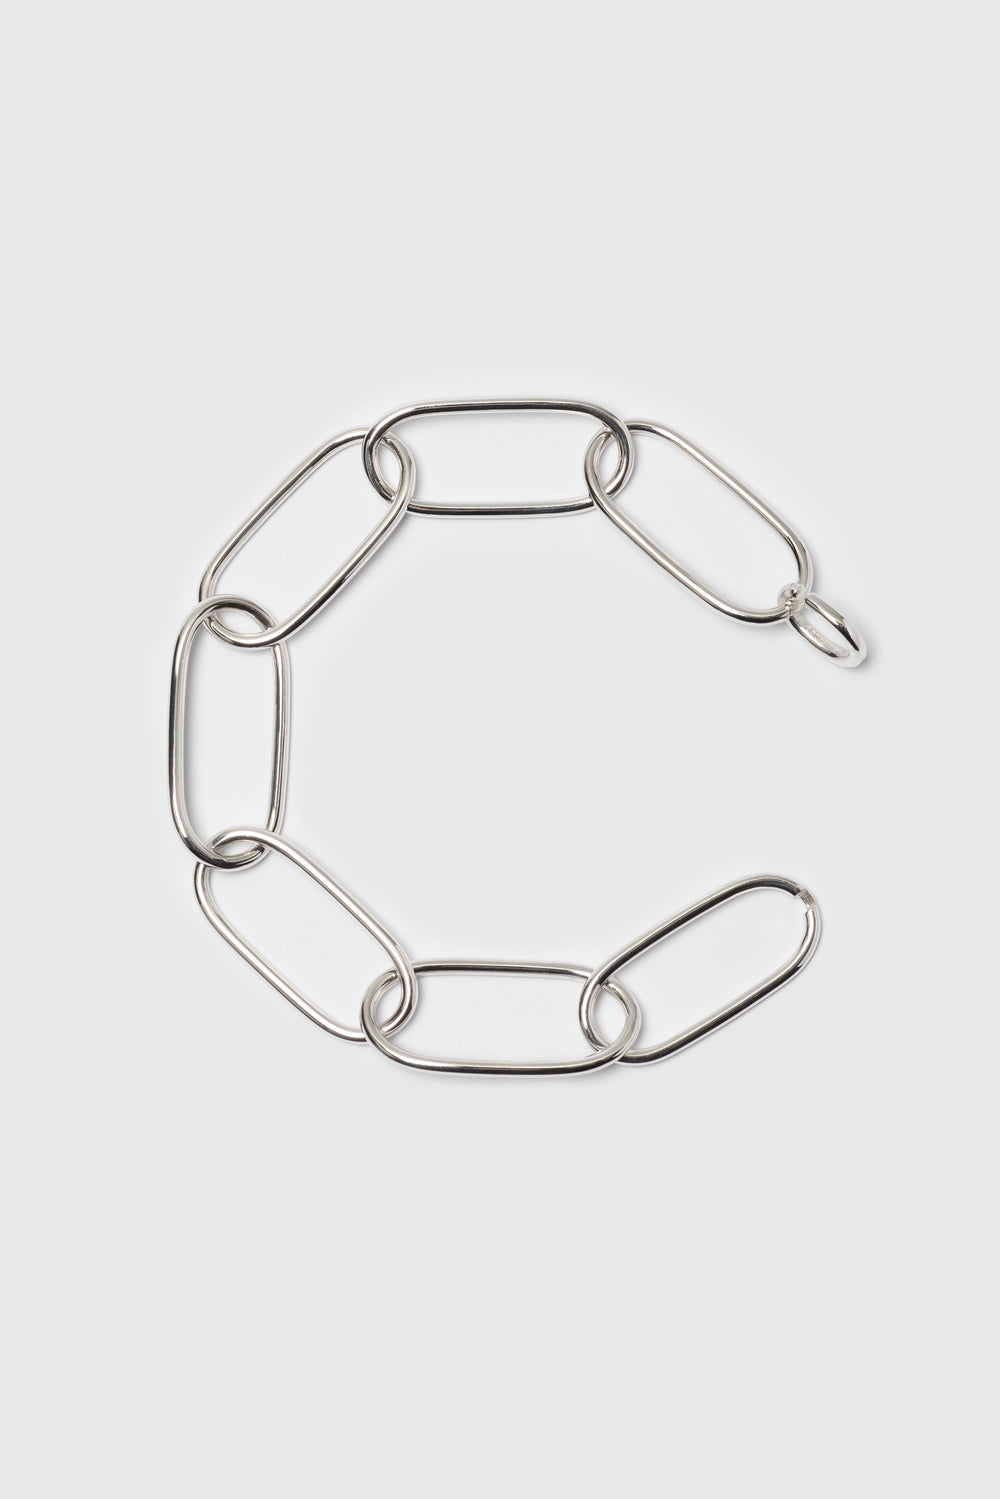 Statement bracelet made from bold link chains with a high gloss finish. Silver jewelry handmade in Berlin.